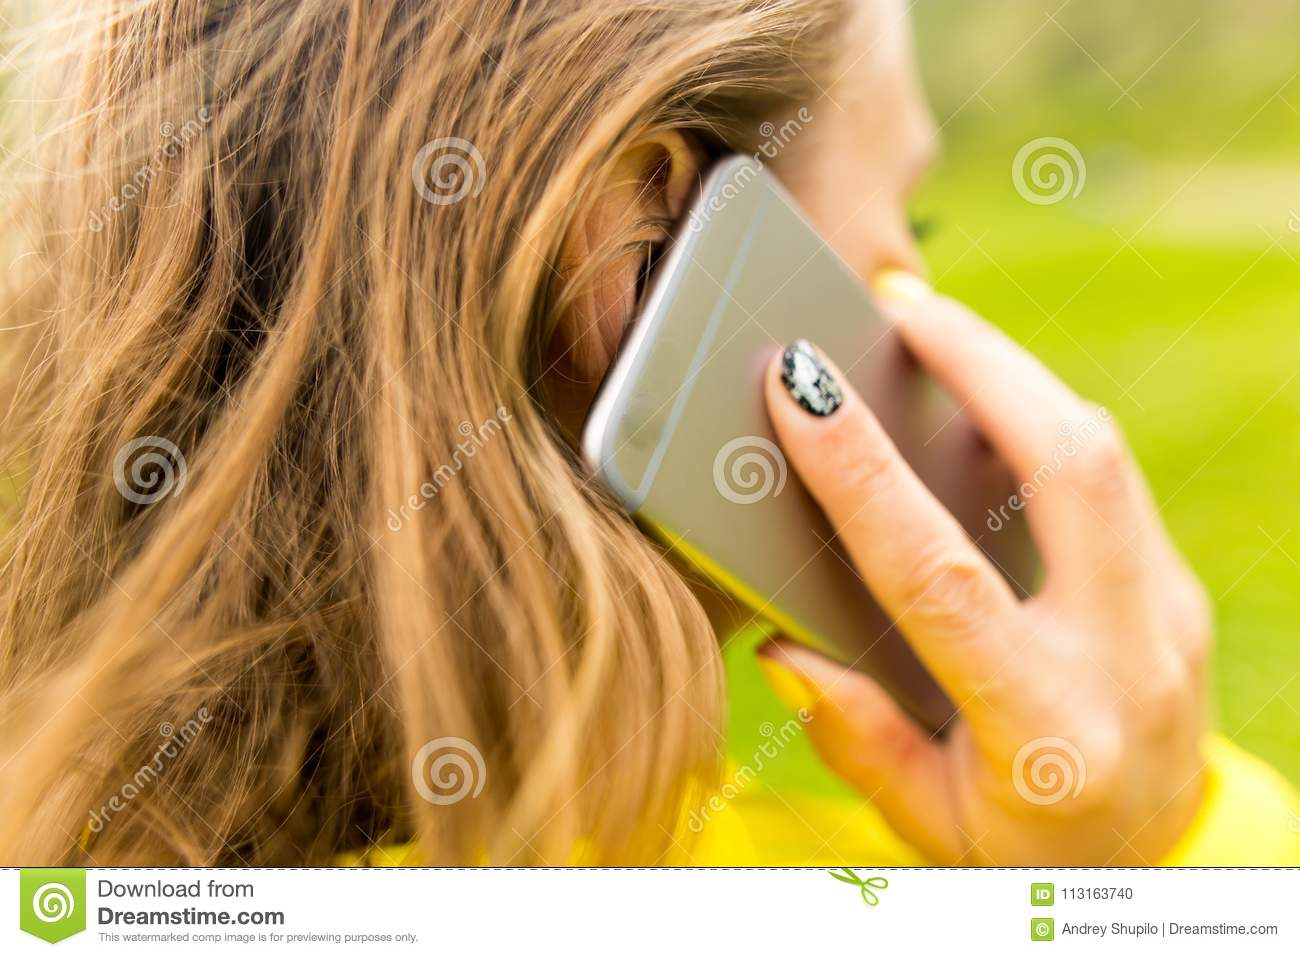 A girl with a phone in her hand outdoors